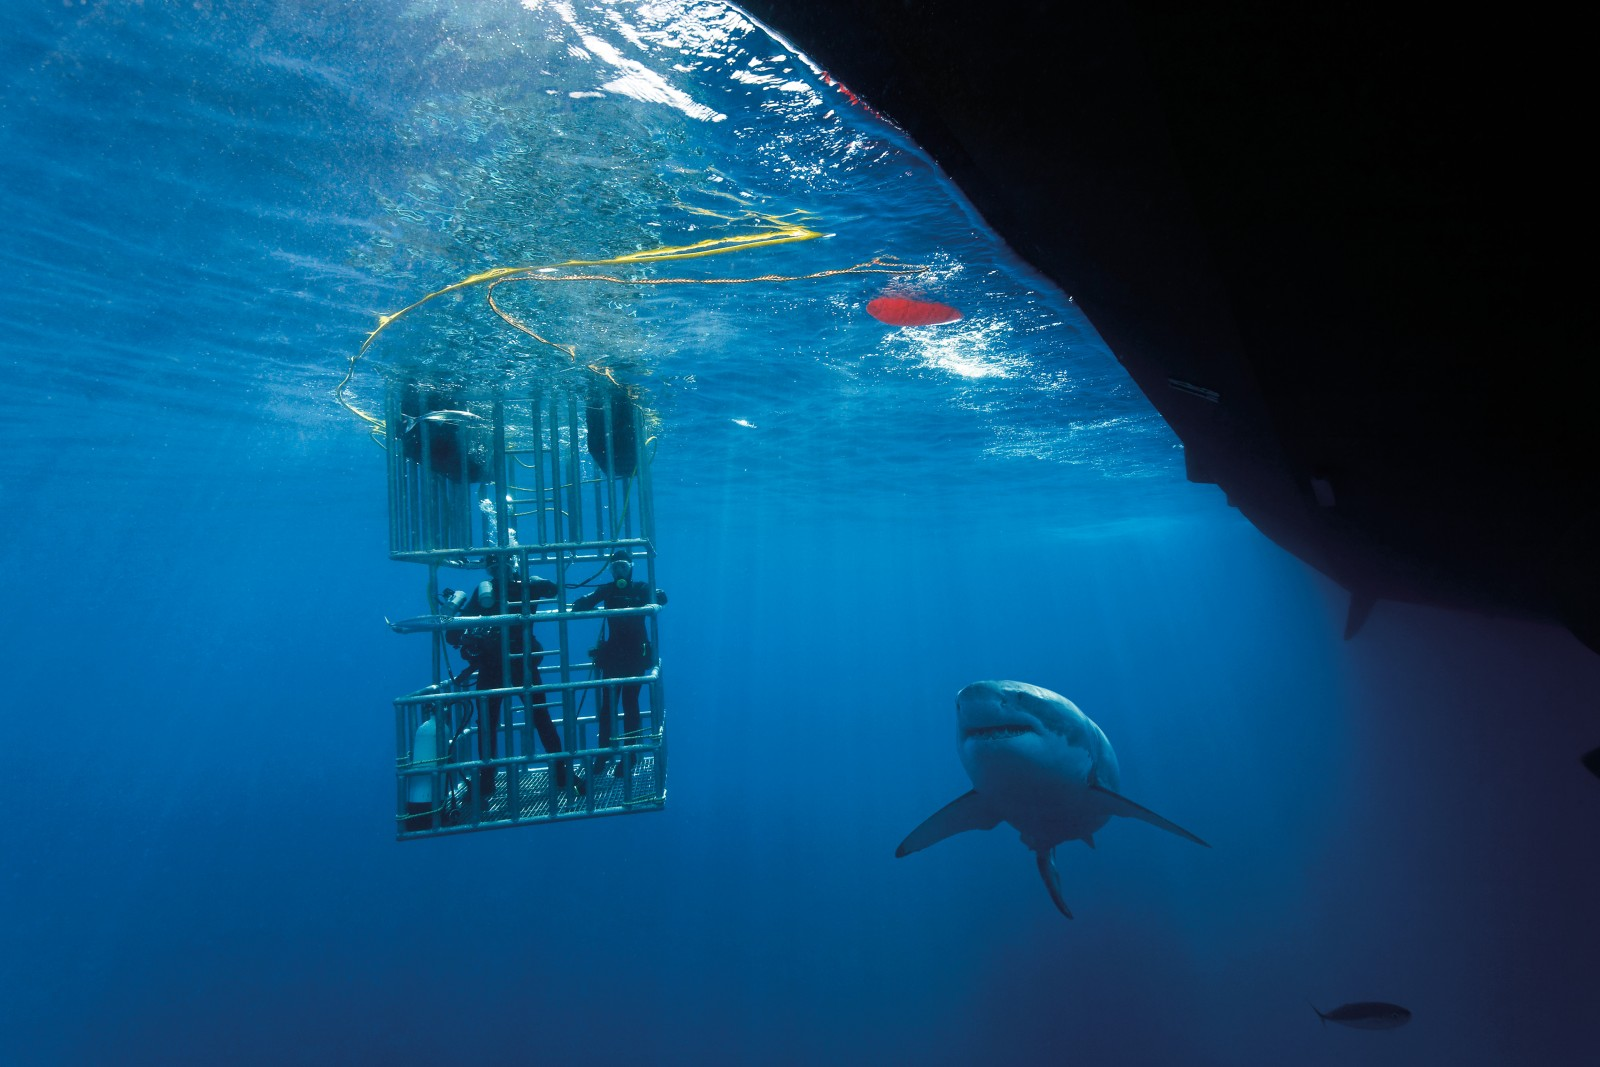 Off the coast of Guadeloupe in Mexico, shark tourism is thriving. But in this zoo, the people are in cages—the subjects of intense scrutiny by curious great white sharks. Above the water operators use minced fish and tuna oil to attract the predators. While the metal bars of a shark cage provide fairly effective protection for those within, there are concerns that sharks are being habituated to associate boats, and divers, with food. In New Zealand, paua divers are calling for a stop to shark cage diving in areas where they work, terrified that the sharks may make this fatal connection.